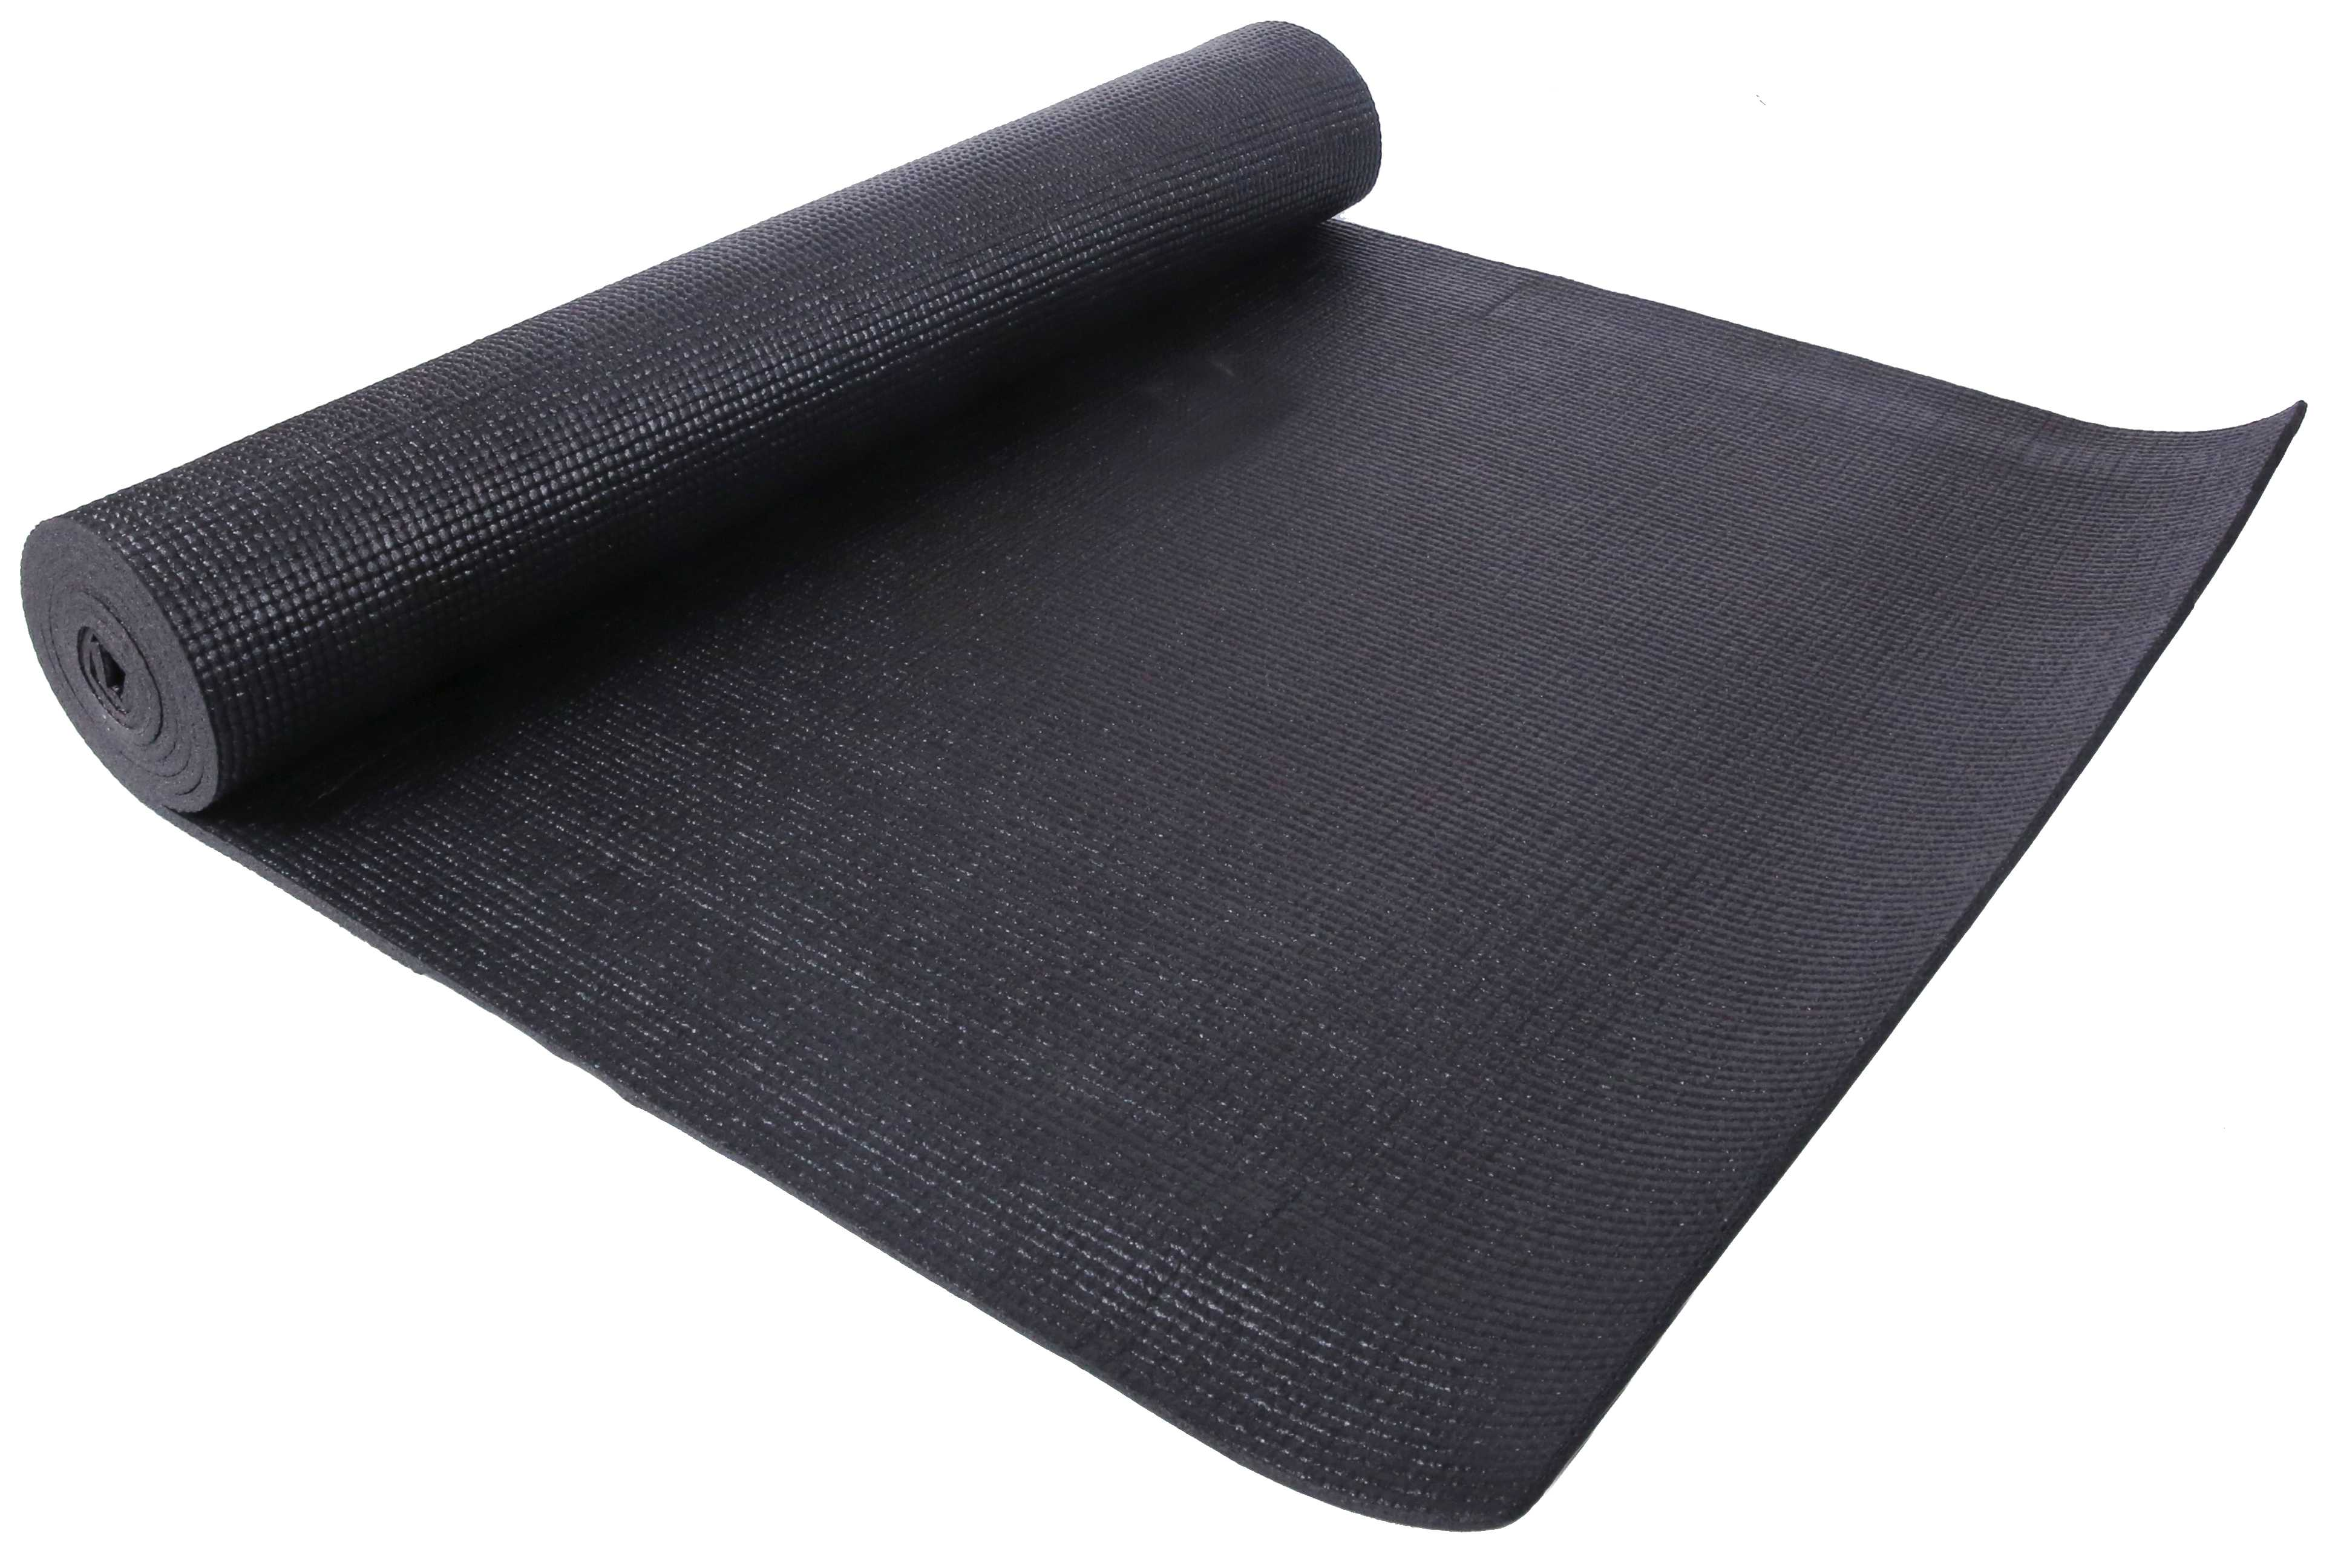 [US Direct] Original BalanceFrom GoYoga All Purpose High Density Non-Slip Exercise Yoga Mat with Carrying Strap, Blue Black